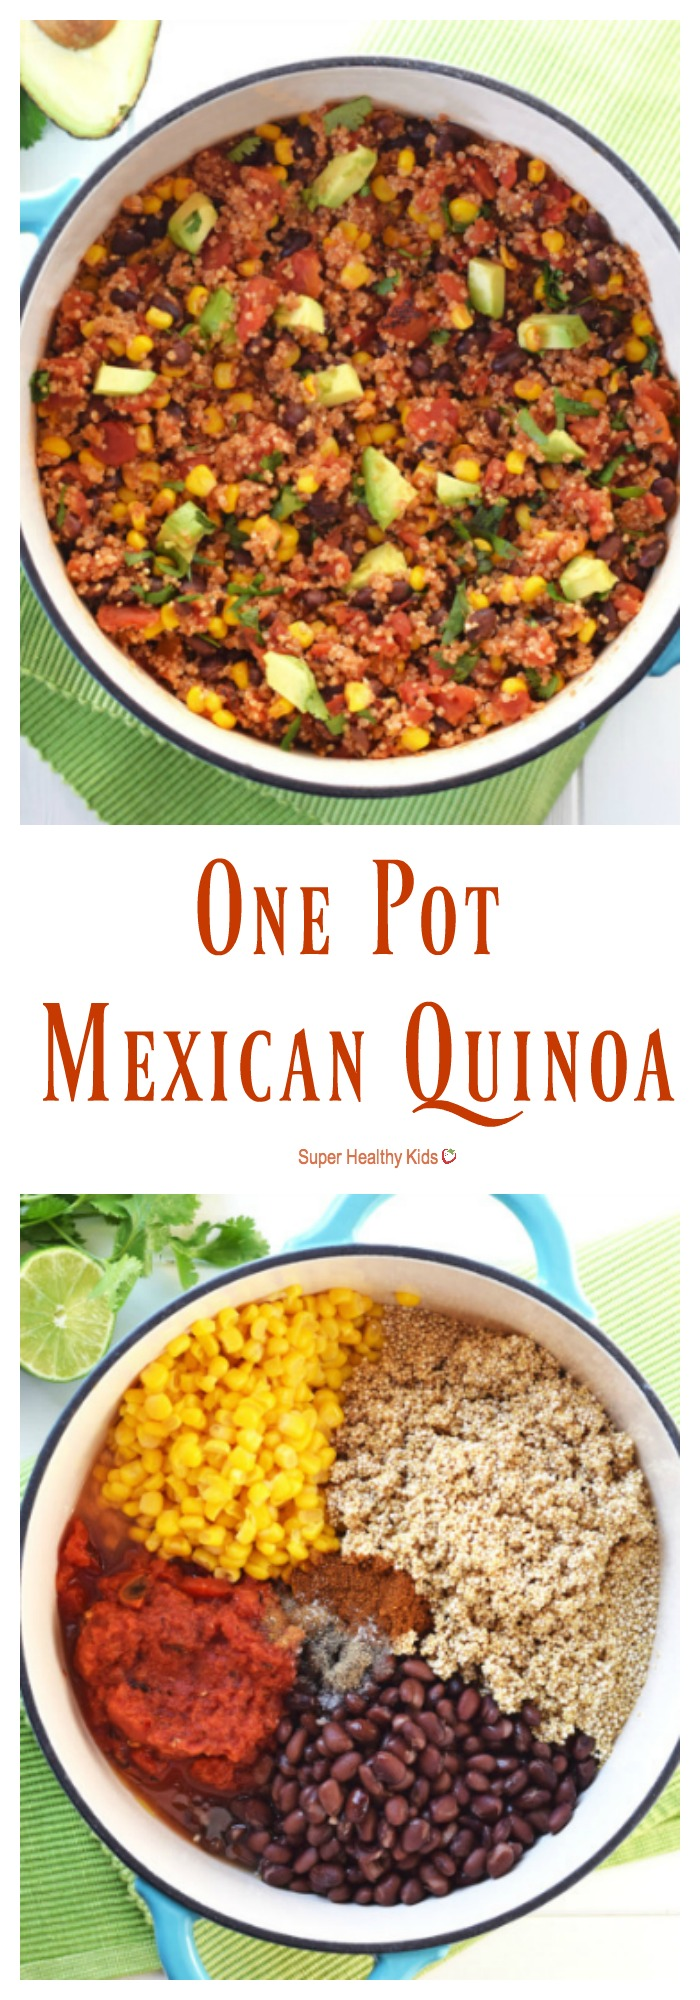 FOOD - One Pot Mexican Quinoa. Packed with protein and vegetables, it only takes 20 minutes to have this healthy, nutritious, gluten free dish on the table! http://www.superhealthykids.com/one-pot-mexican-quinoa/